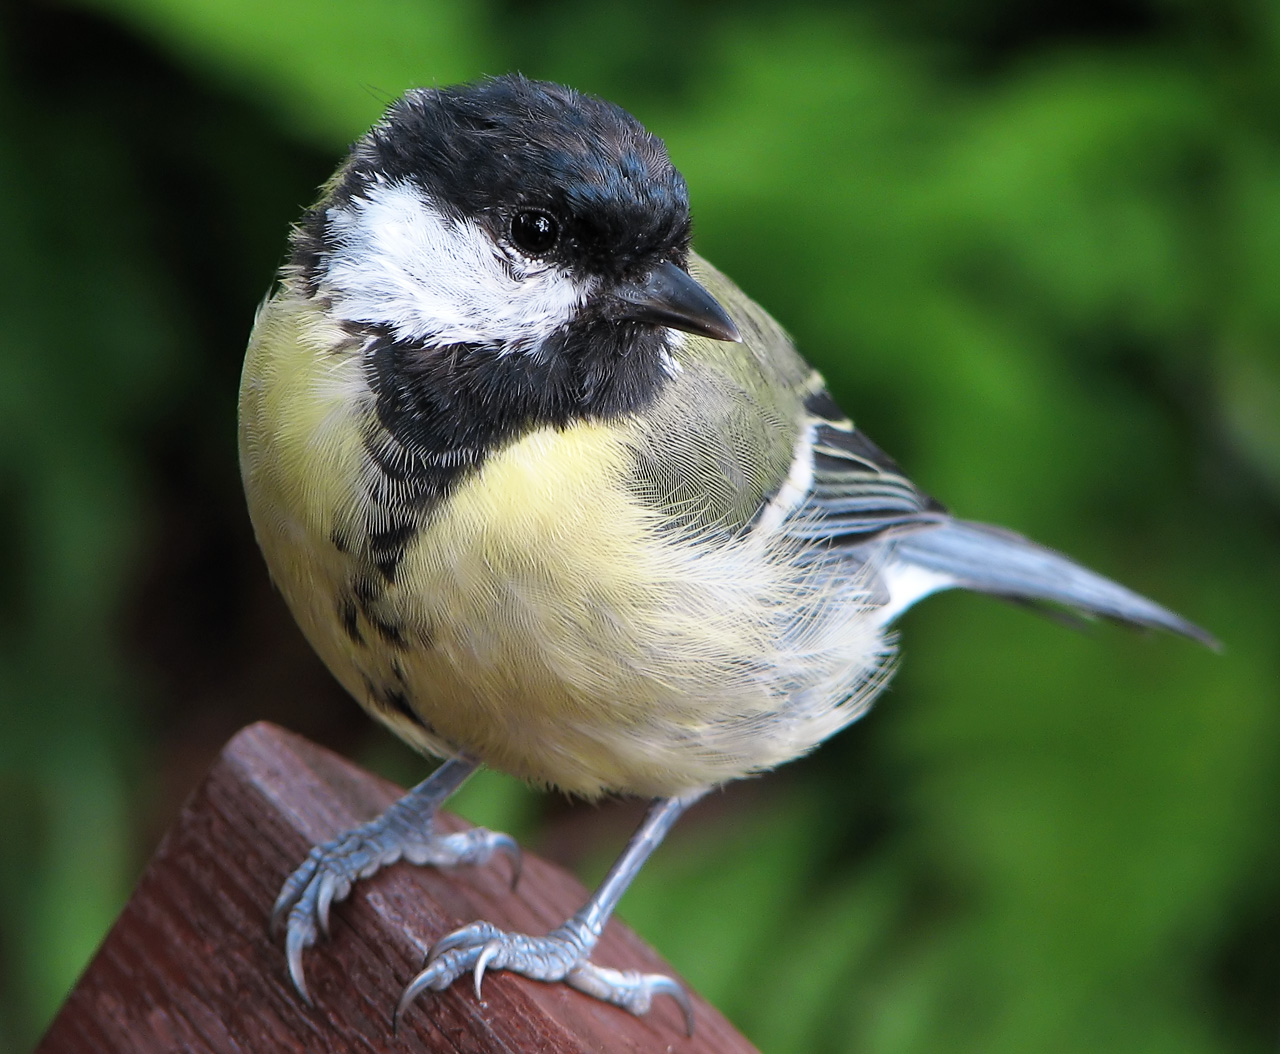 Great_Tit_%28Parus_major%29_1